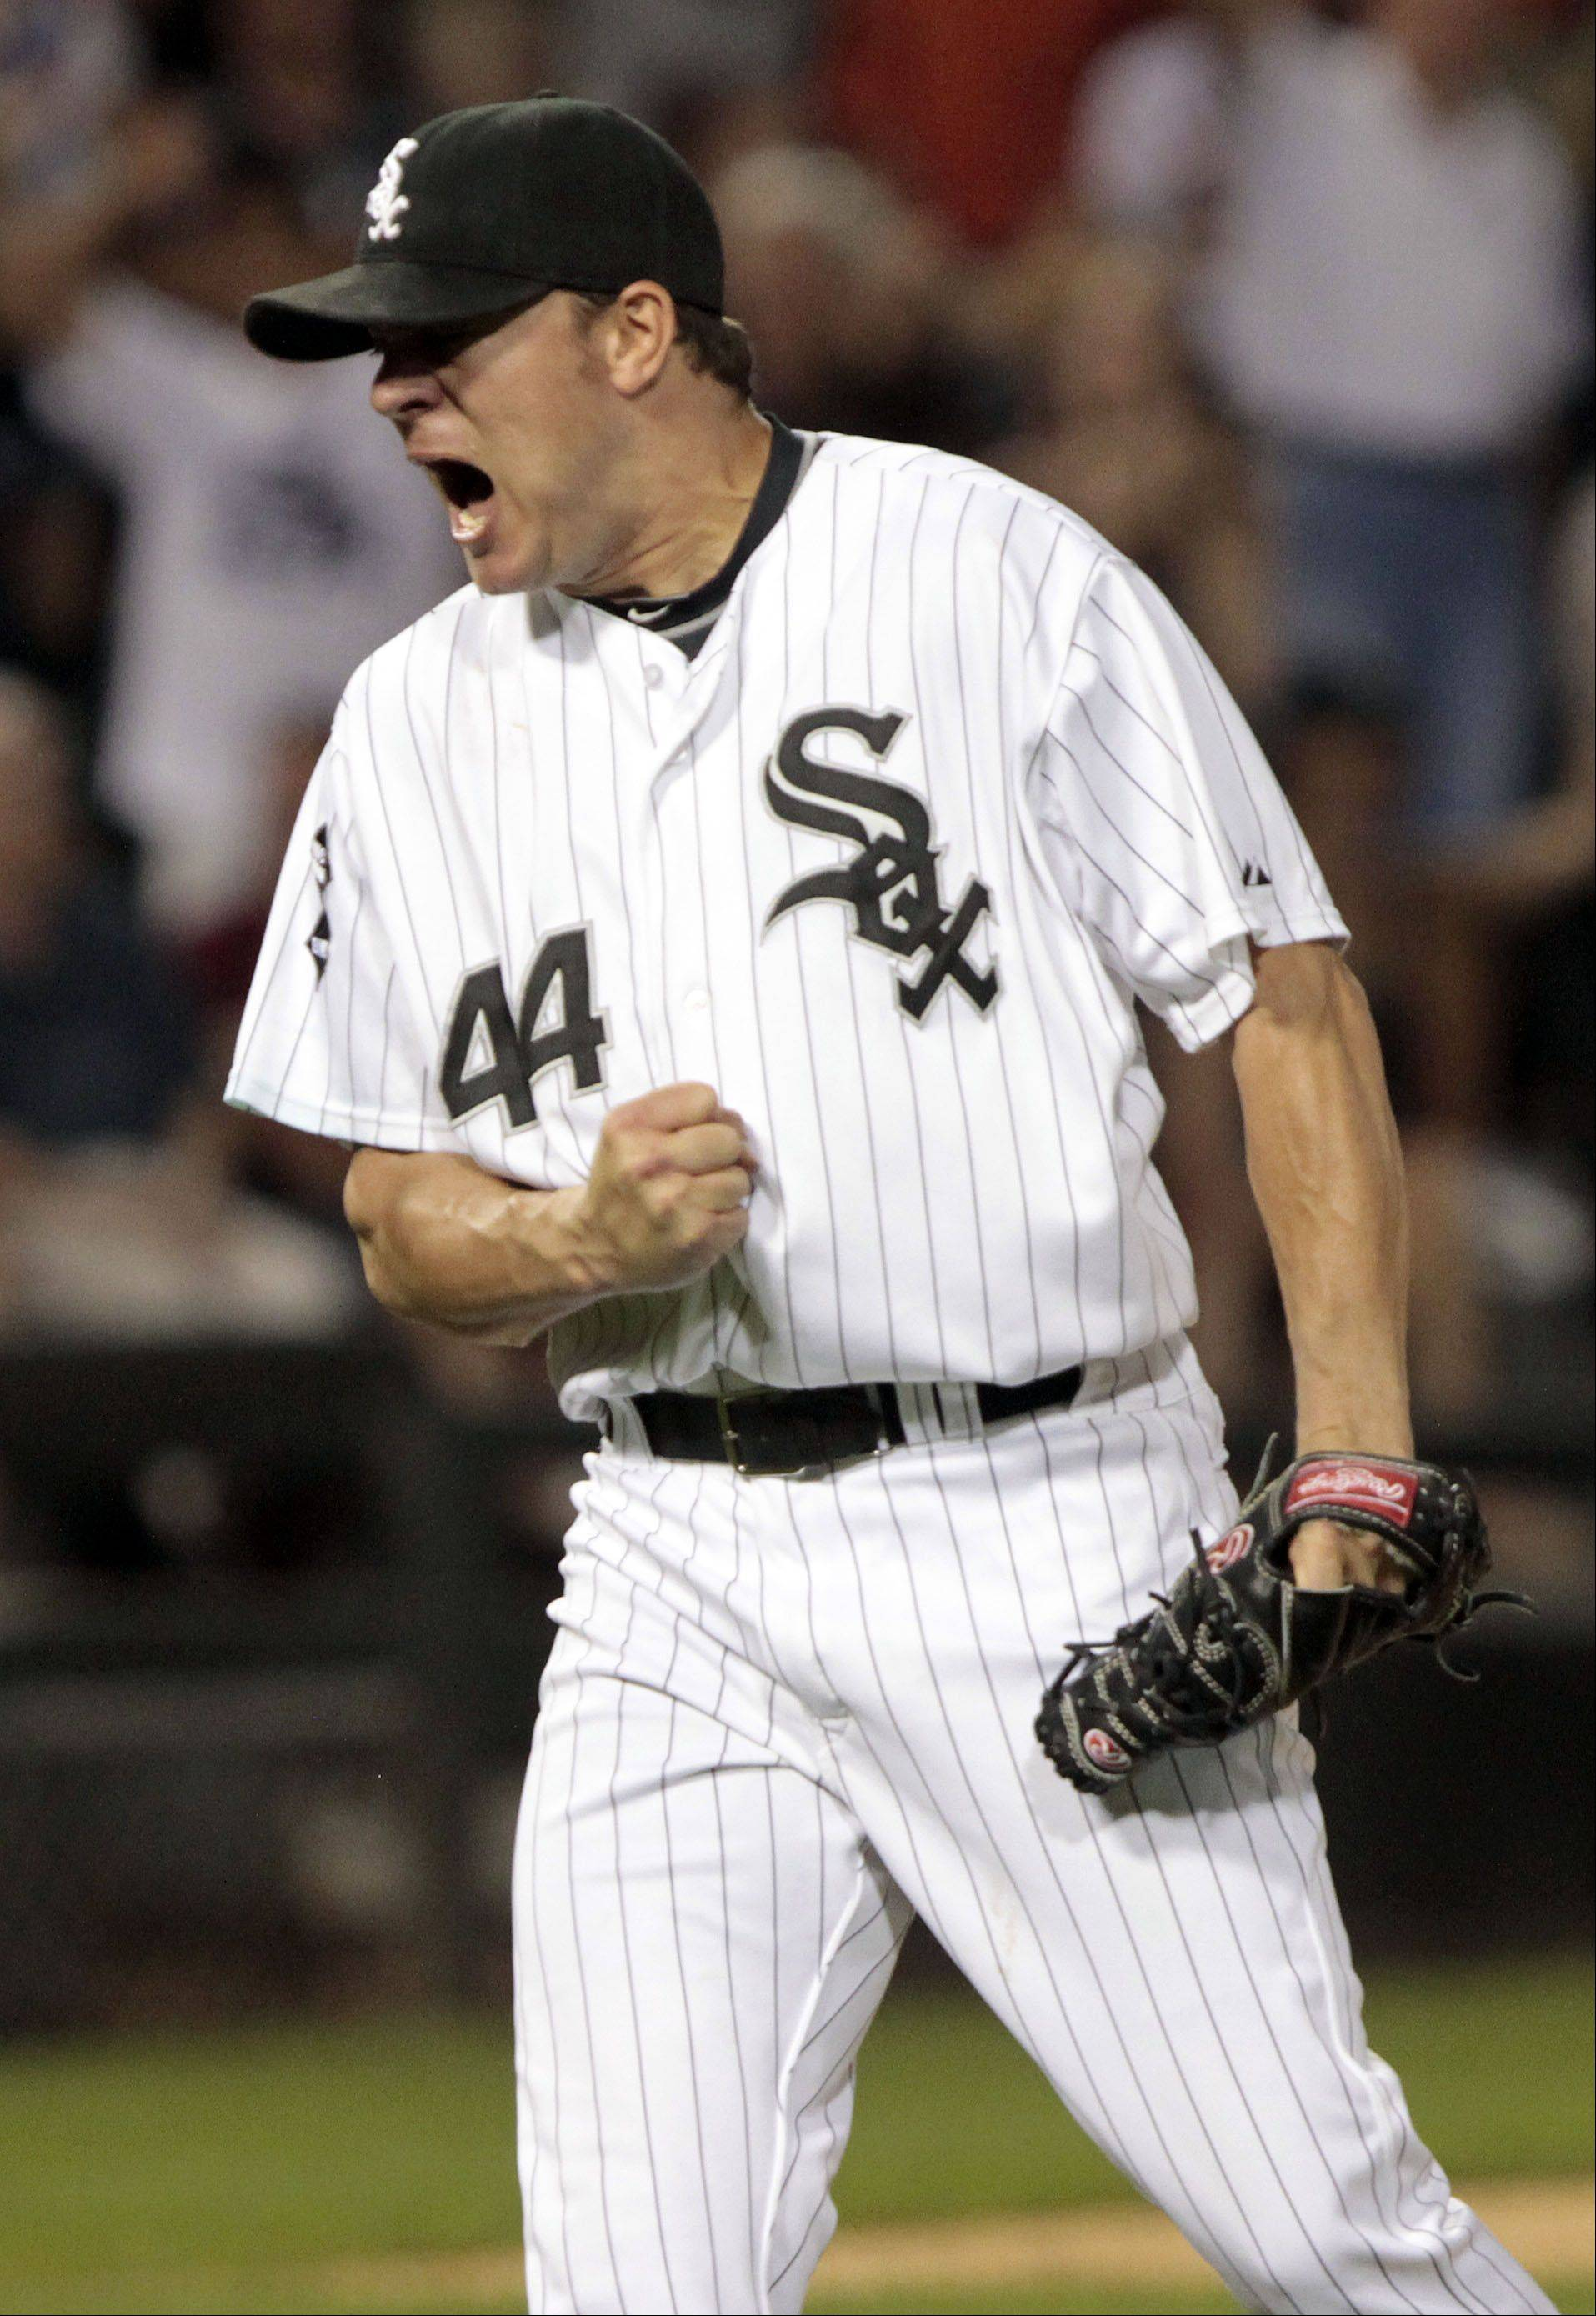 Chicago White Sox's Jake Peavy celebrates late in the game.